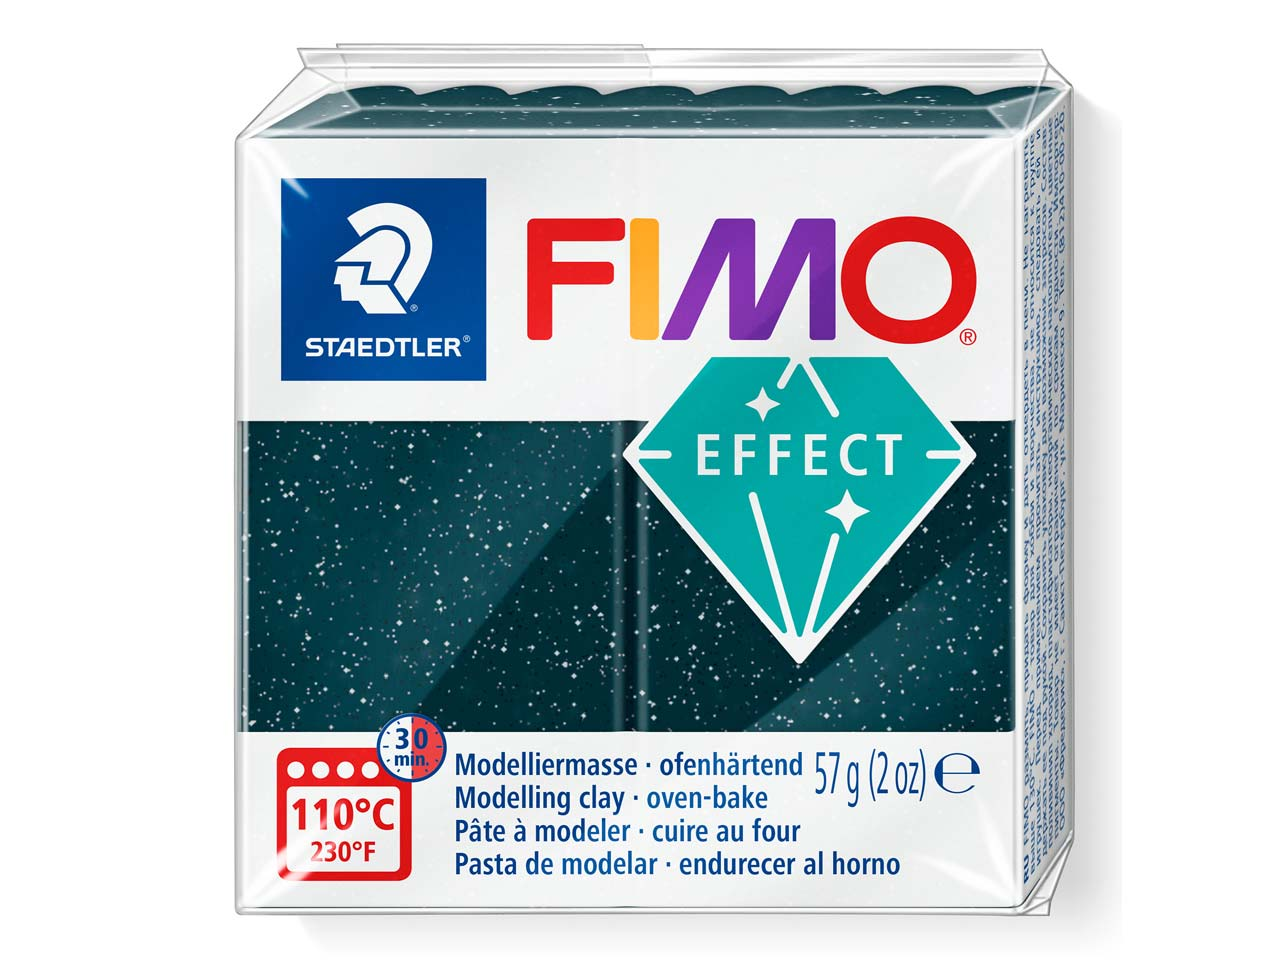 Fimo Effect Gemstone Stardust 56g  Polymer Clay Block, Fimo Fimo      Colour Reference 903